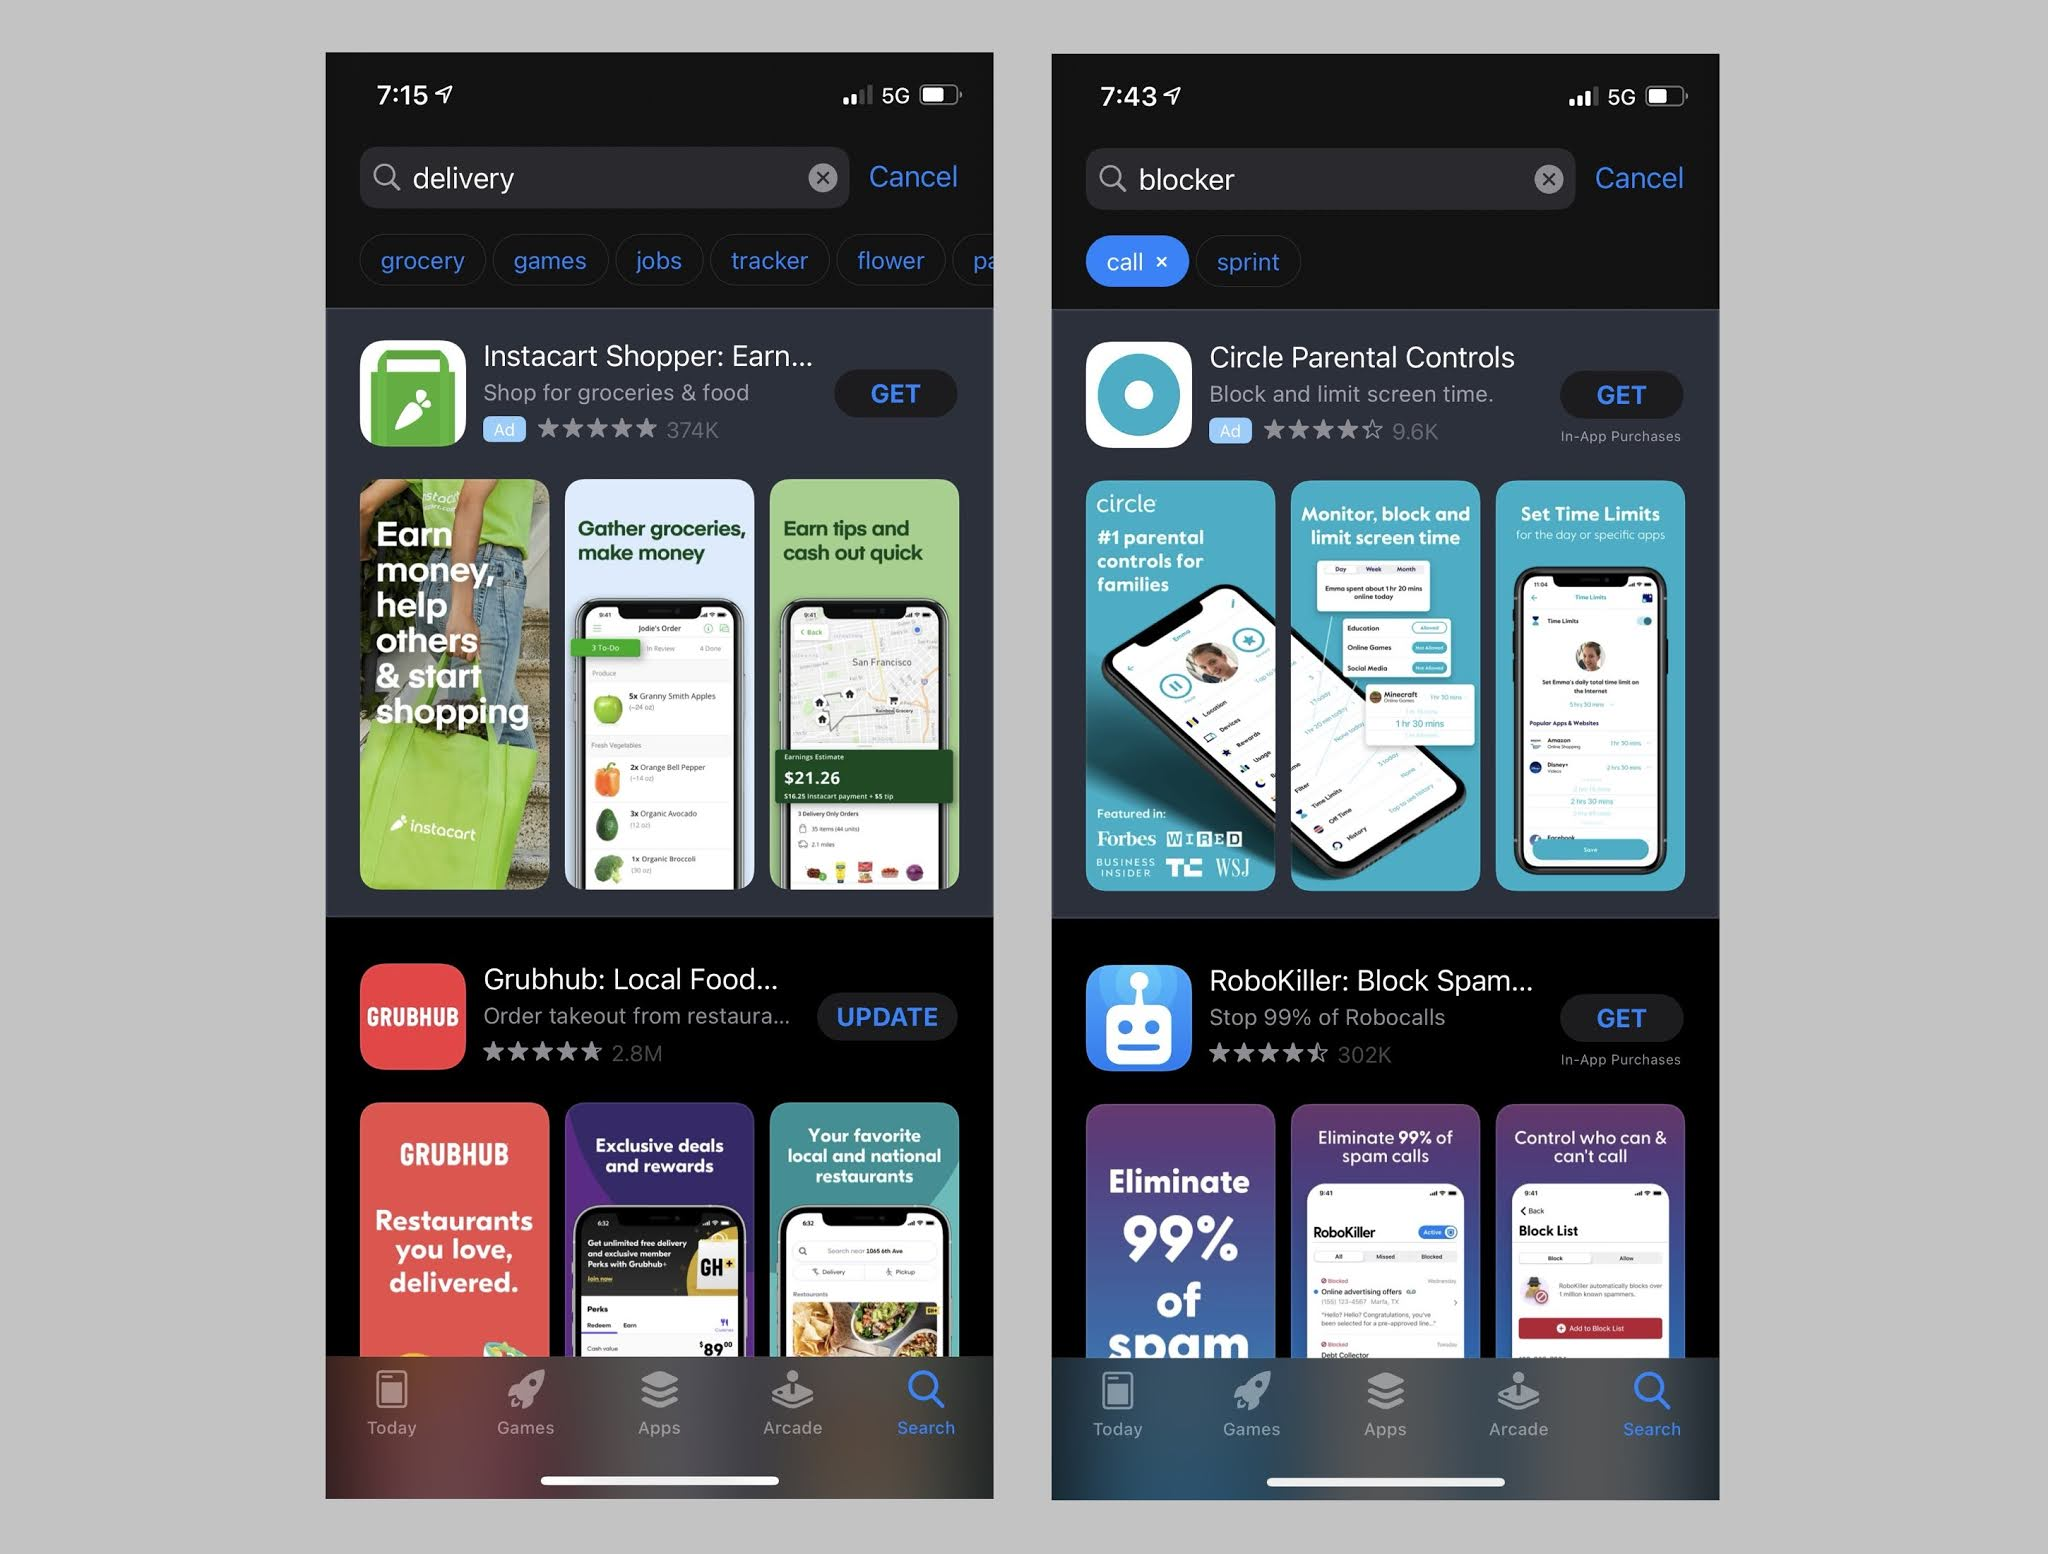 New Search Labels Might Make Apple App Store Easier to Navigate